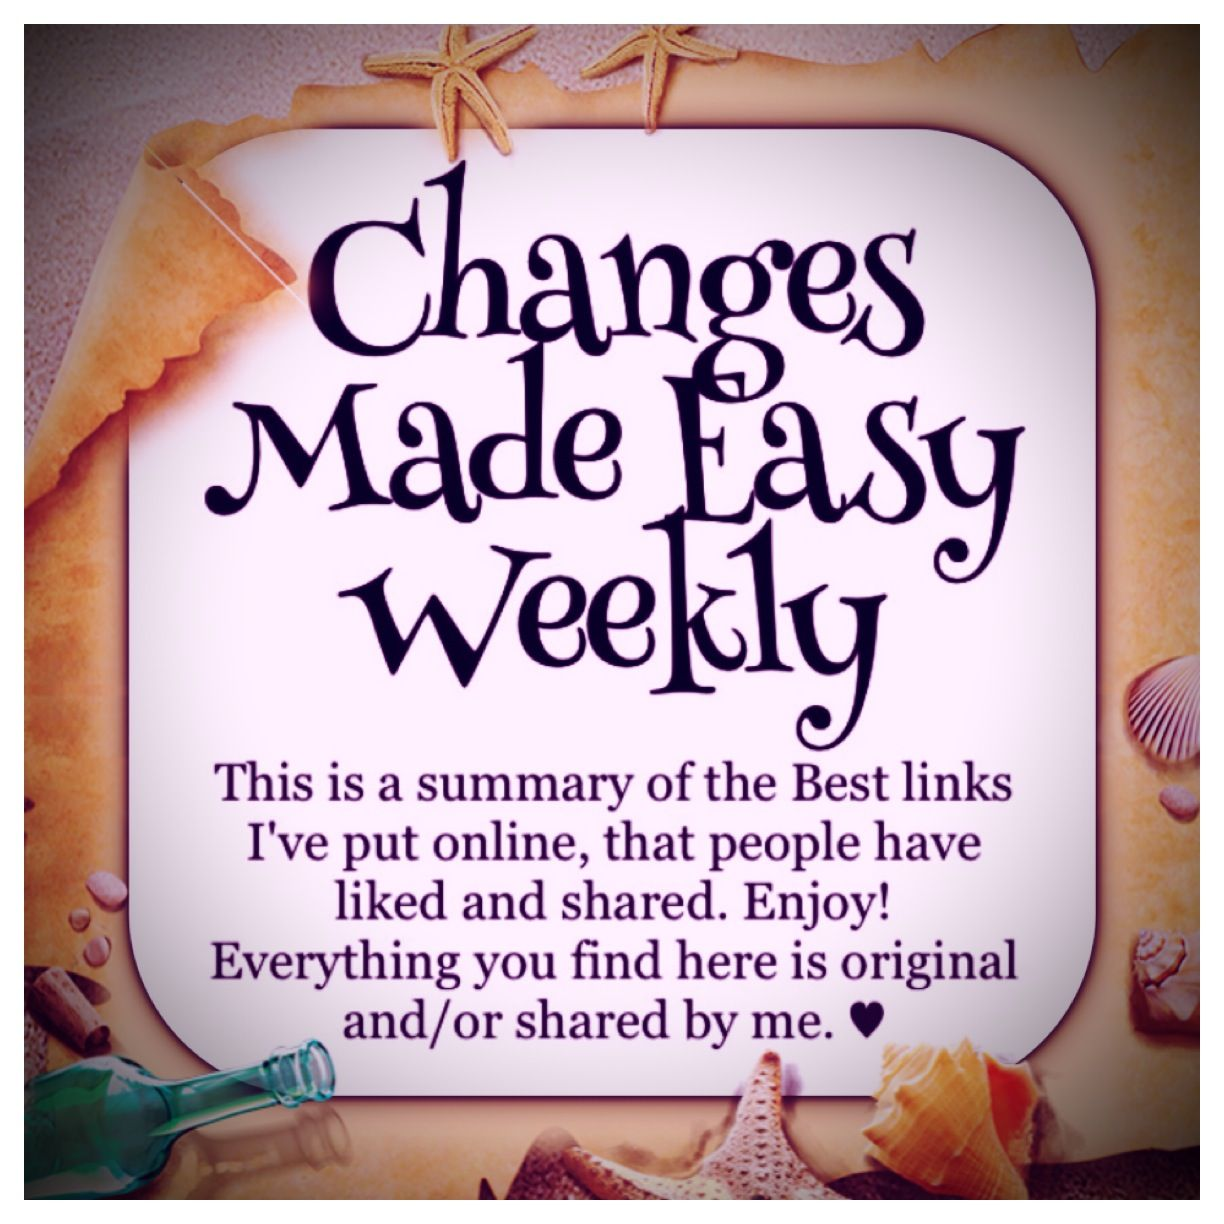 #PositiveThinking #HealthyLiving ☀️ #ChangesMadeEasy Weekly ☀️ #affirmations, #quotes & #articles ☀️ http://jmcveyc.ht/Paperlily ☀️ Enjoy!